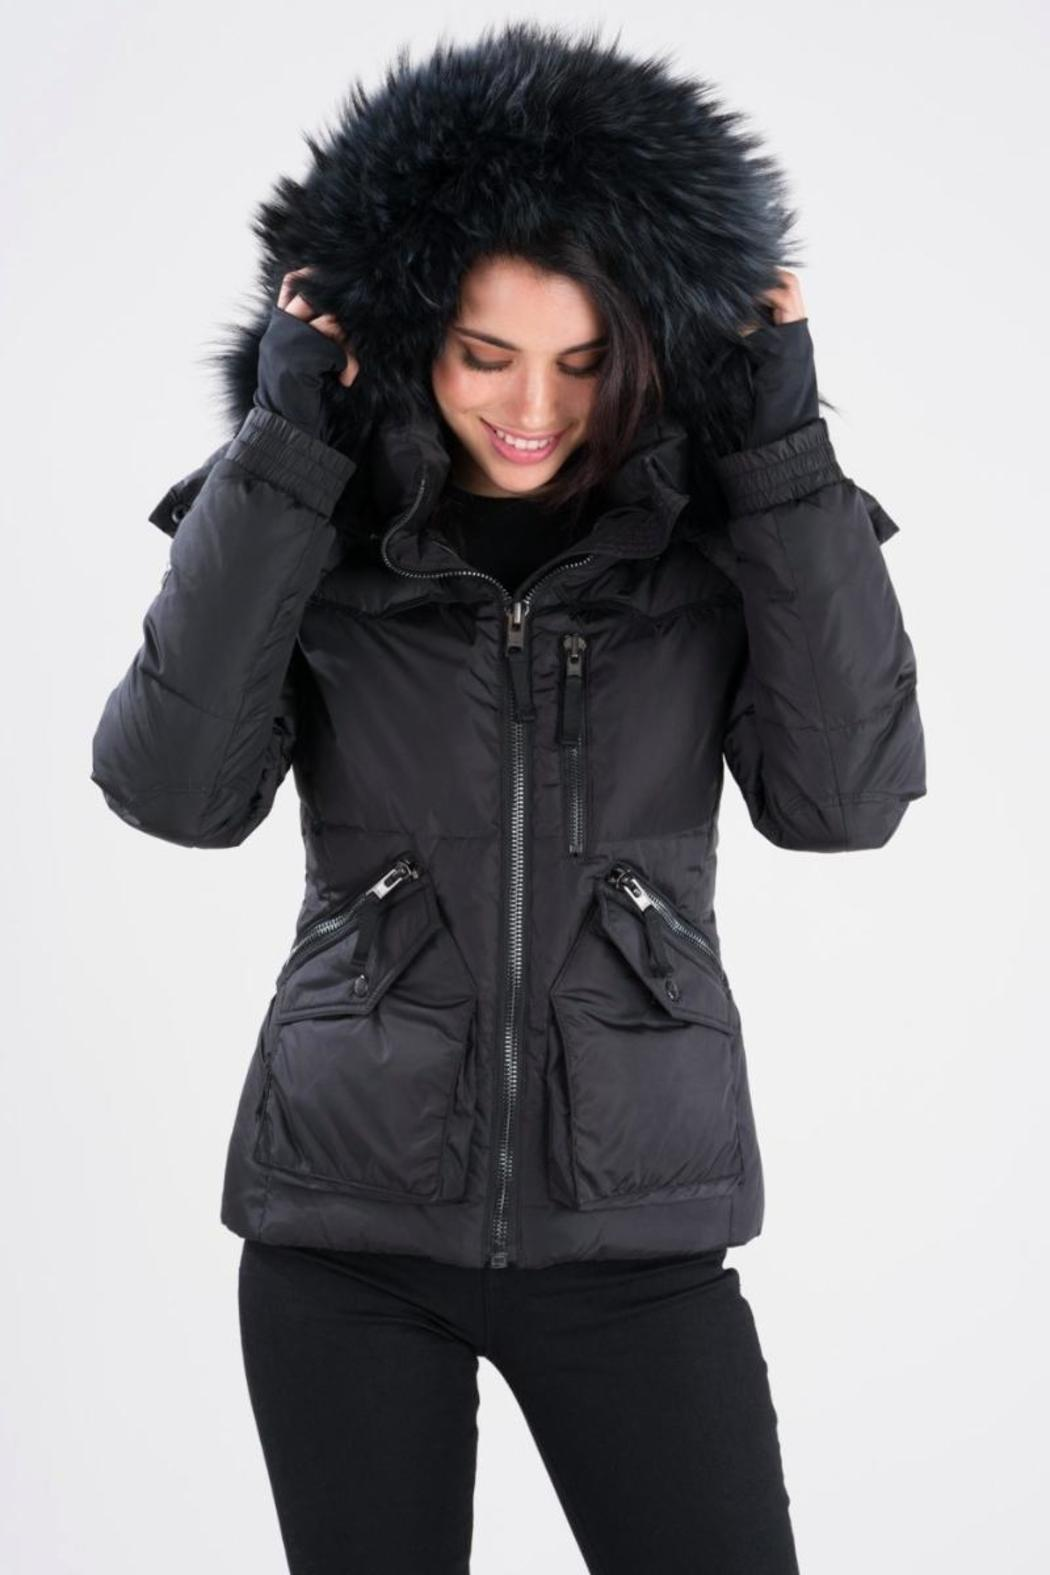 Sam Fur Jetset Jacket From Hudson Valley By Bfree